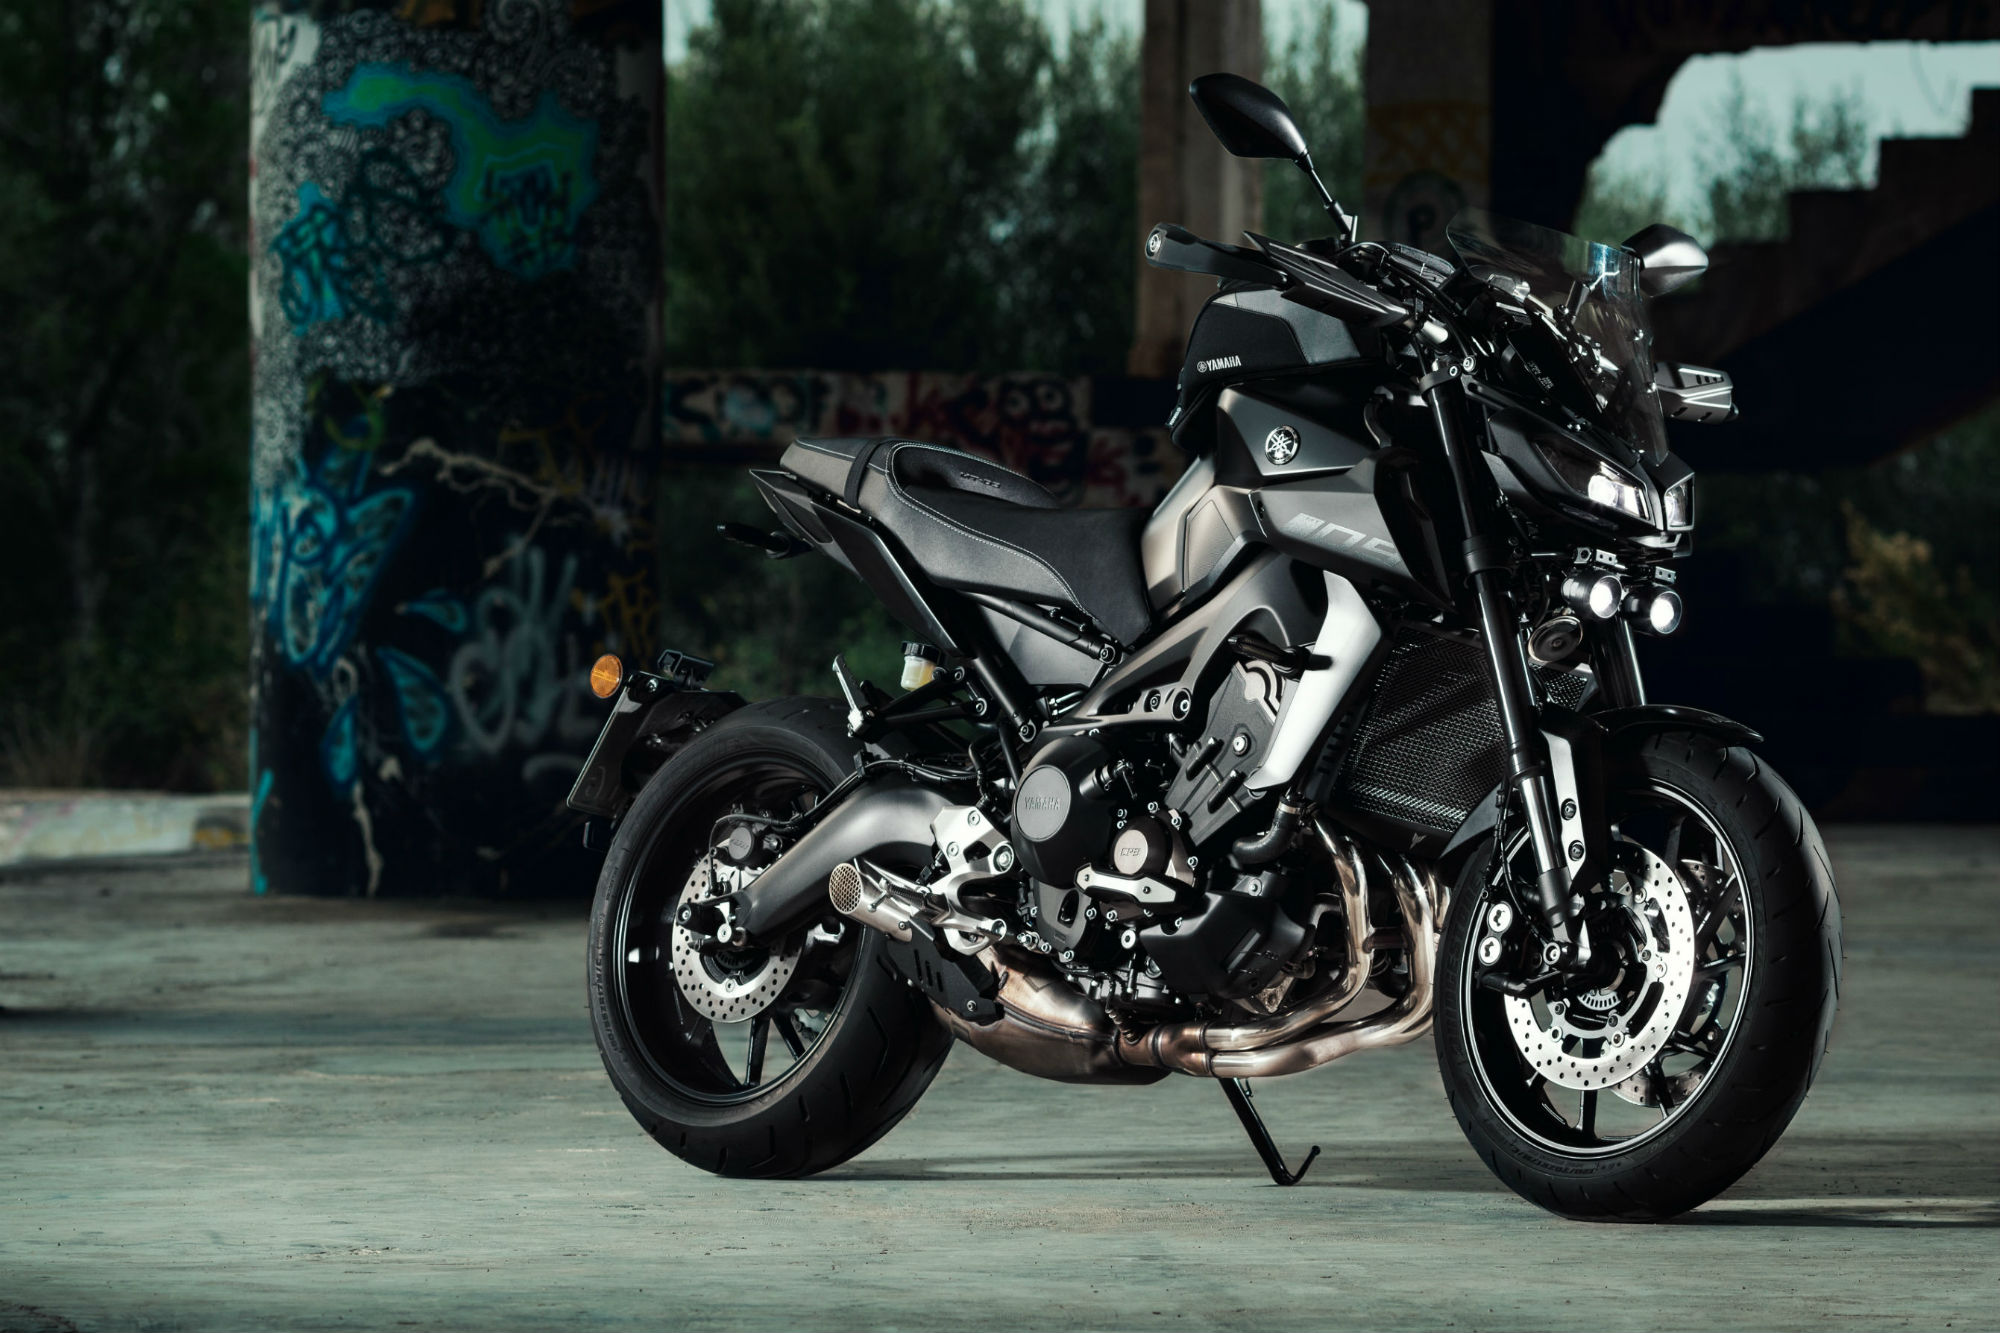 While Touring Accessories Include A Higher Screen Comfort Seat Fog Lights Hand Guards And Engine Protectors